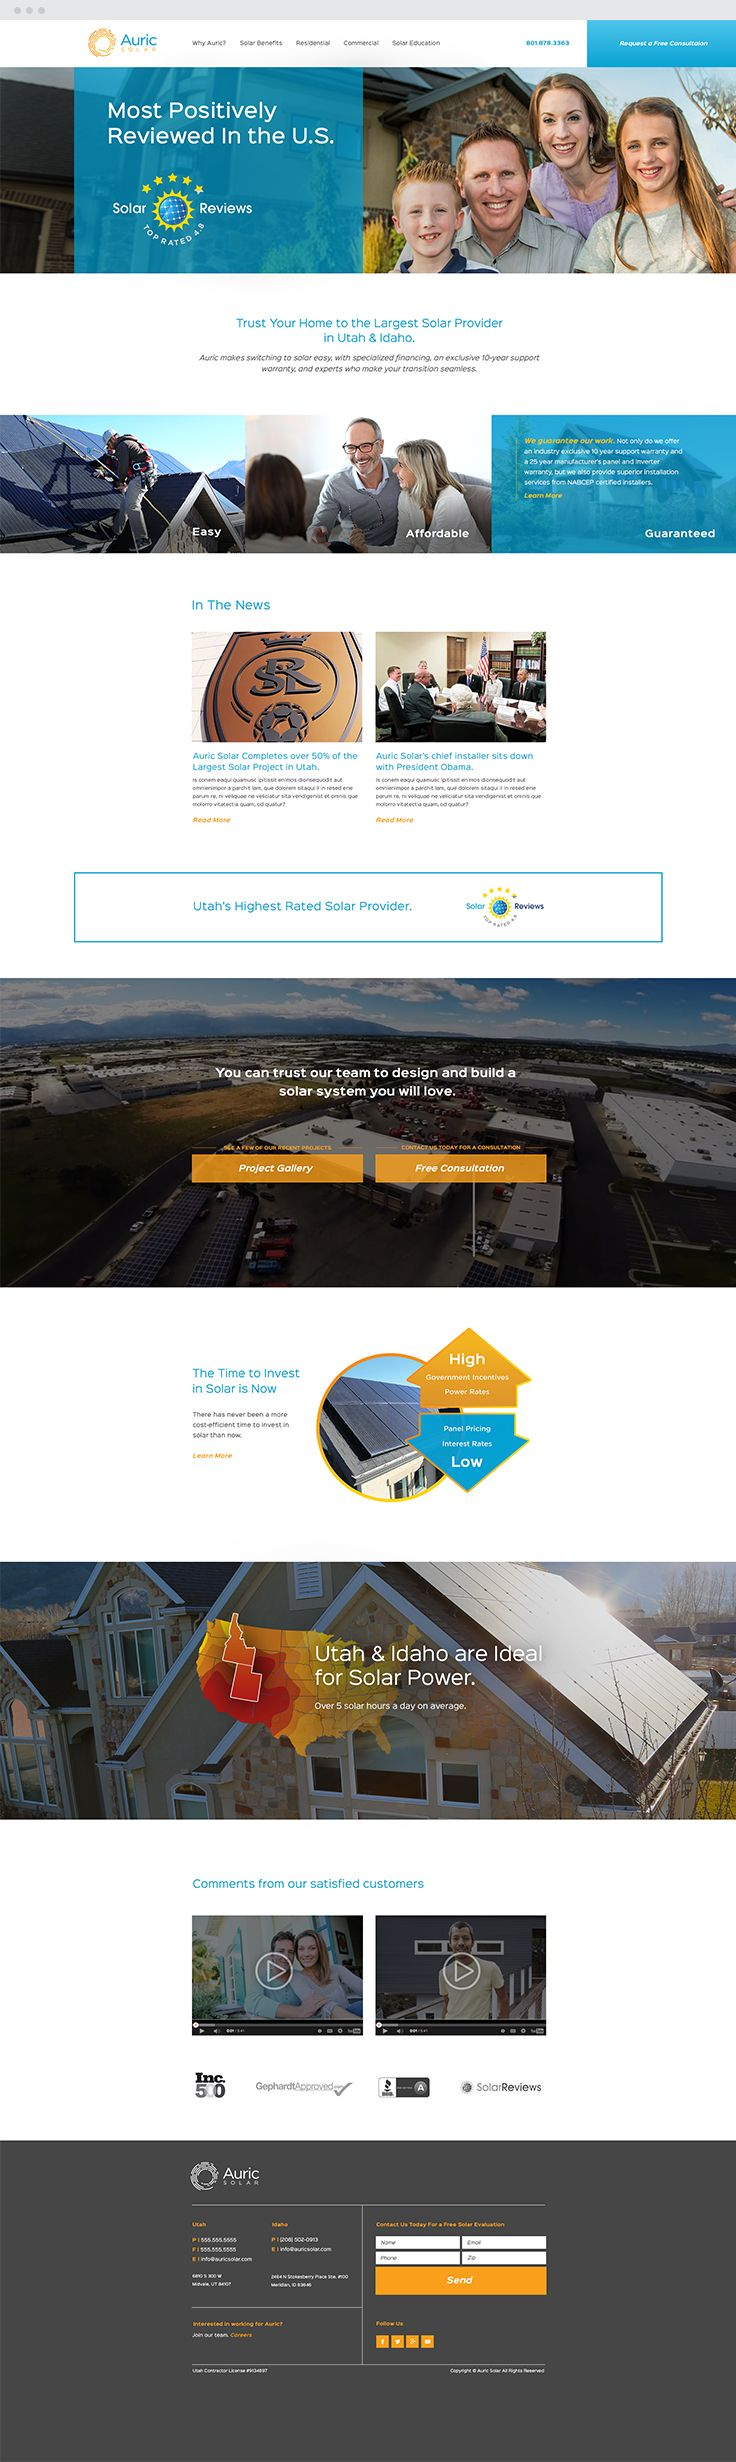 Auric Solar Responsive Web Design  #epicmarketing #marketing #auricsolar #solar #webdesign #web #responsive #graphicdesign